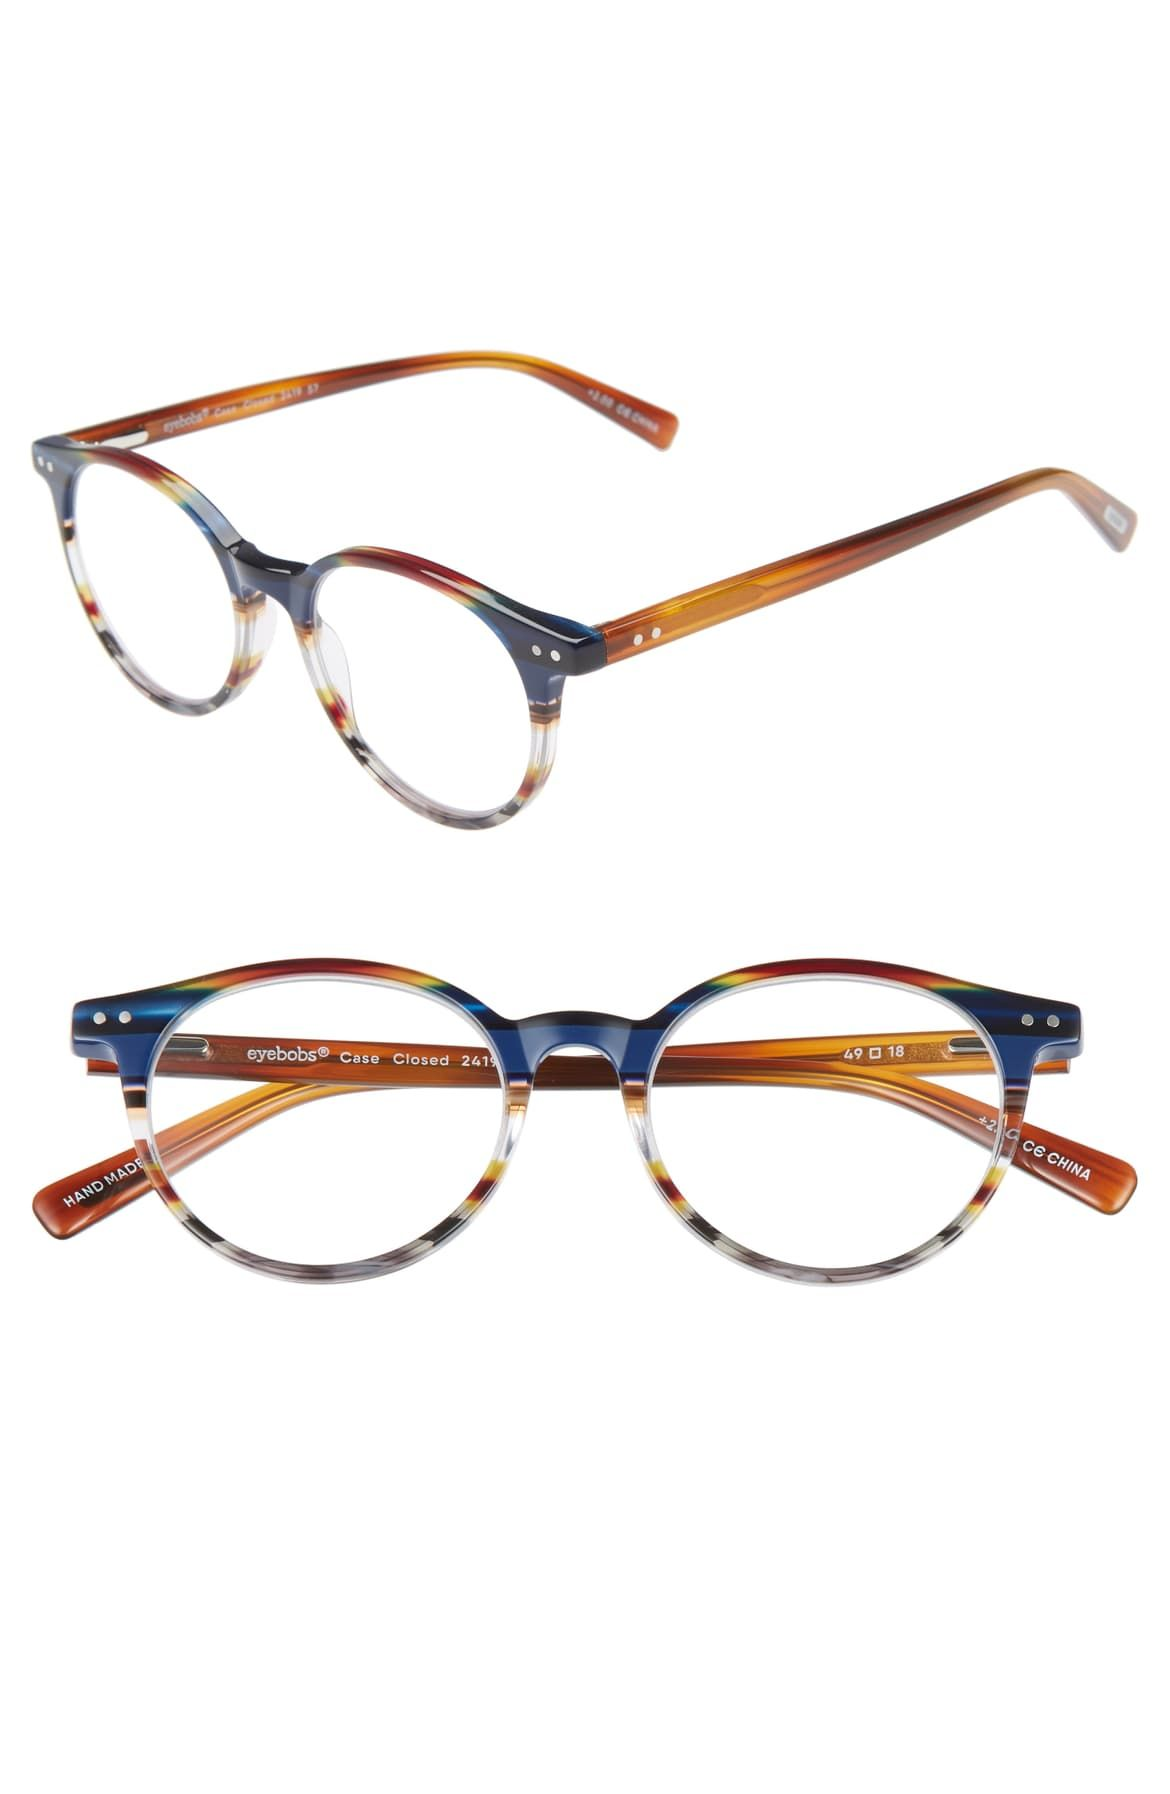 319df11cf446 eyebobs Case Closed 49mm Round Reading Glasses   Nordstrom   specs ...